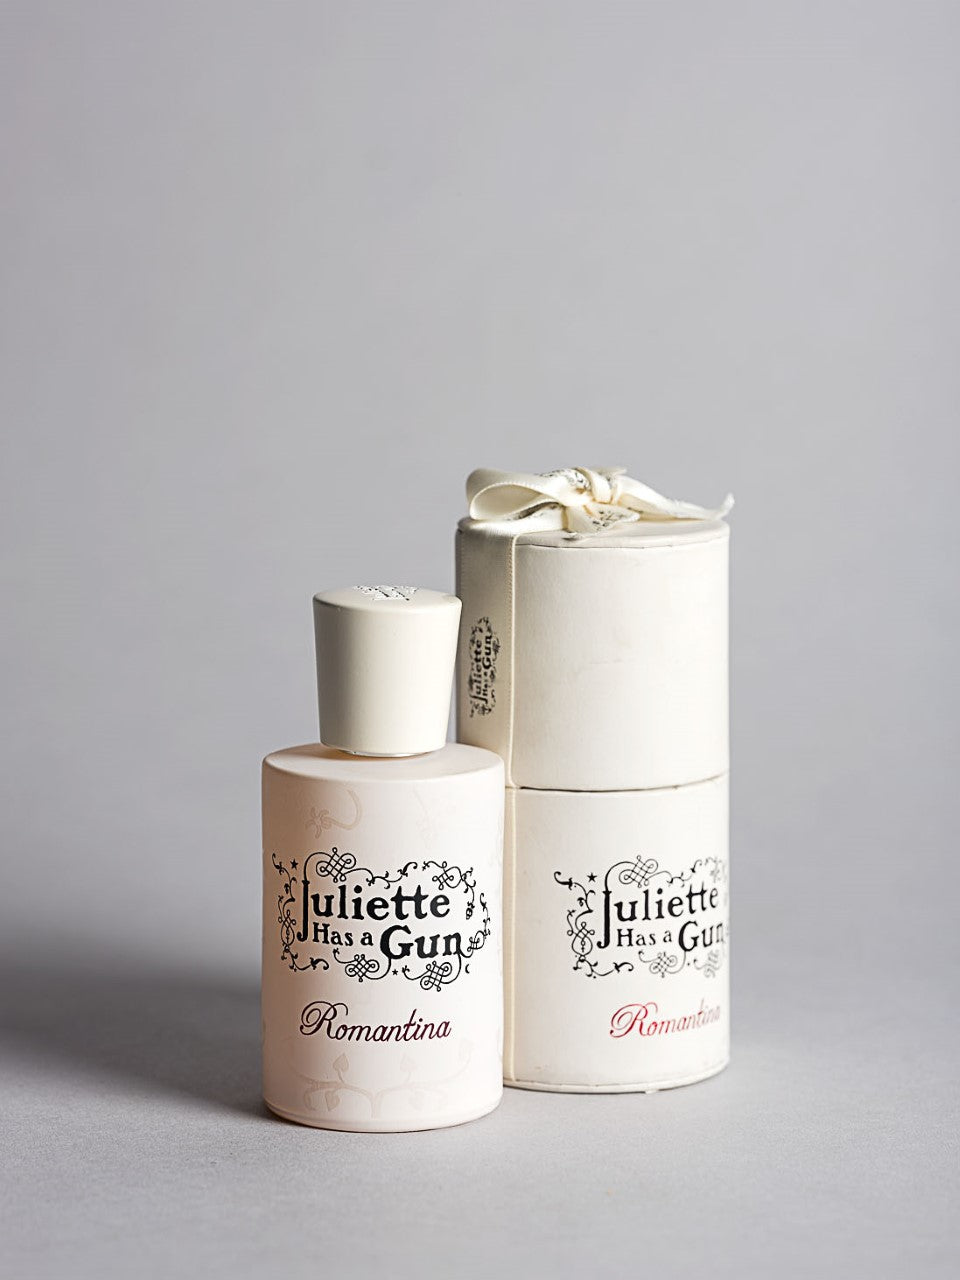 Juliette has a gun - ROMANTINA 50ml